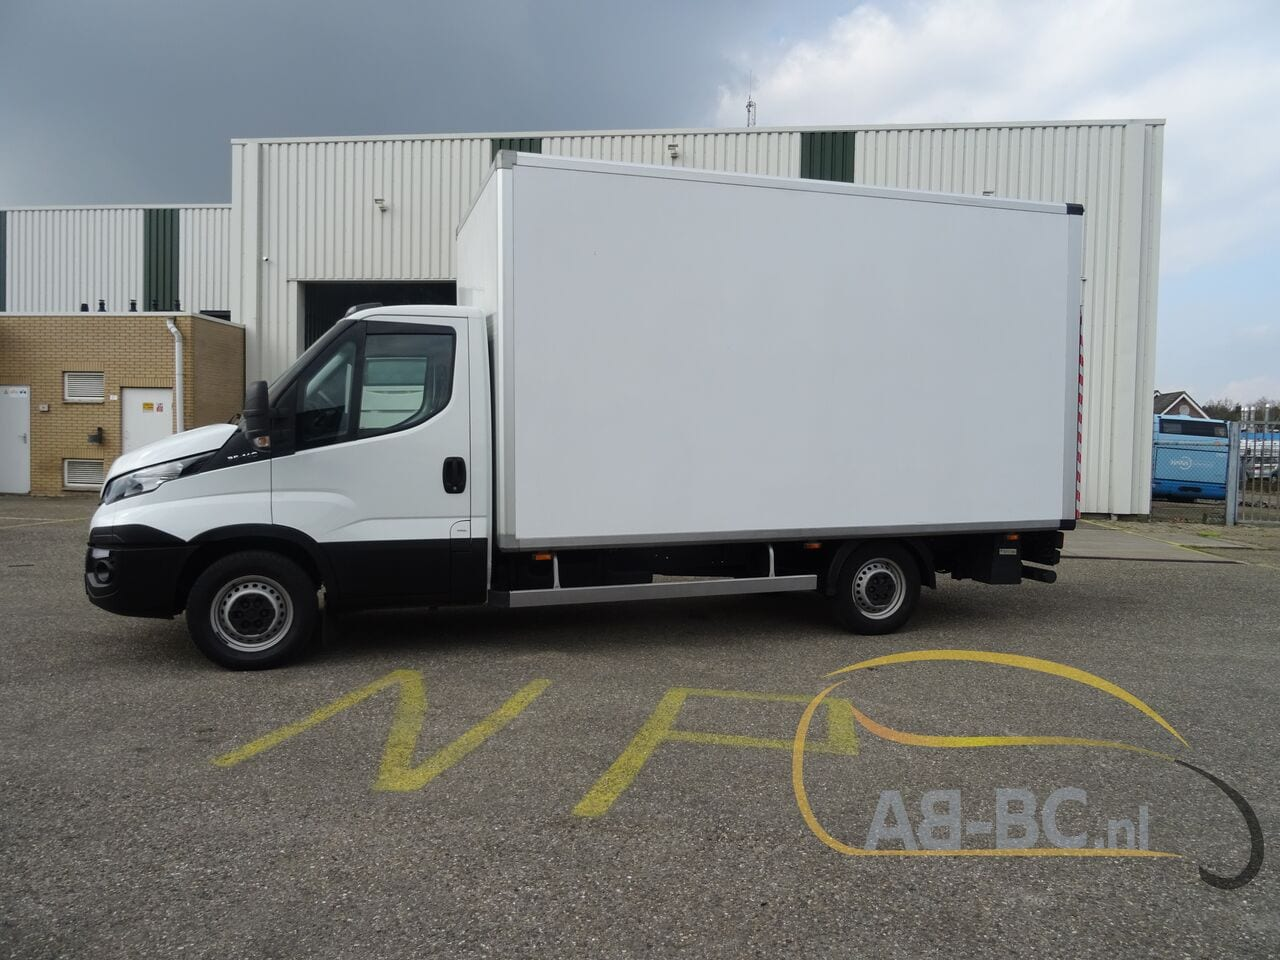 commercial-vehicle-box-truck-3-5tIVECO-Daily-35S14-EURO-6---1618842028848252846_big_2e3921a829c8547410dc98f813bedd39--20081111411660340700